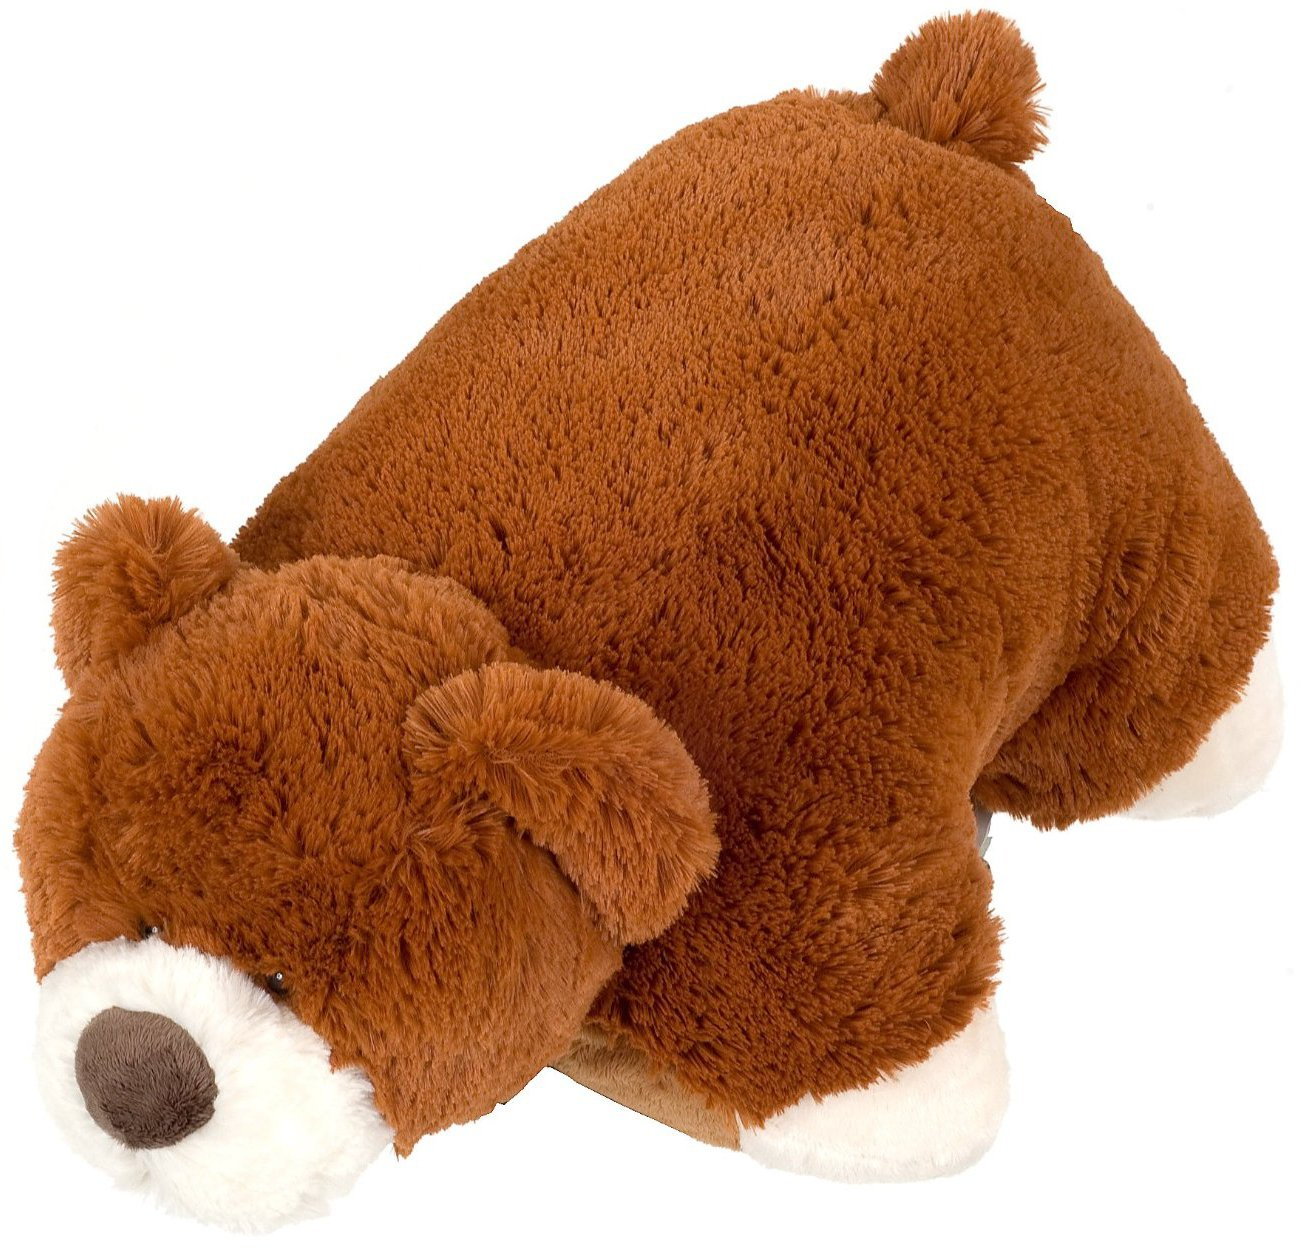 Pee Wee Genuine Pillow Pet Mr. BEAR Small 11 by Pillow Pets